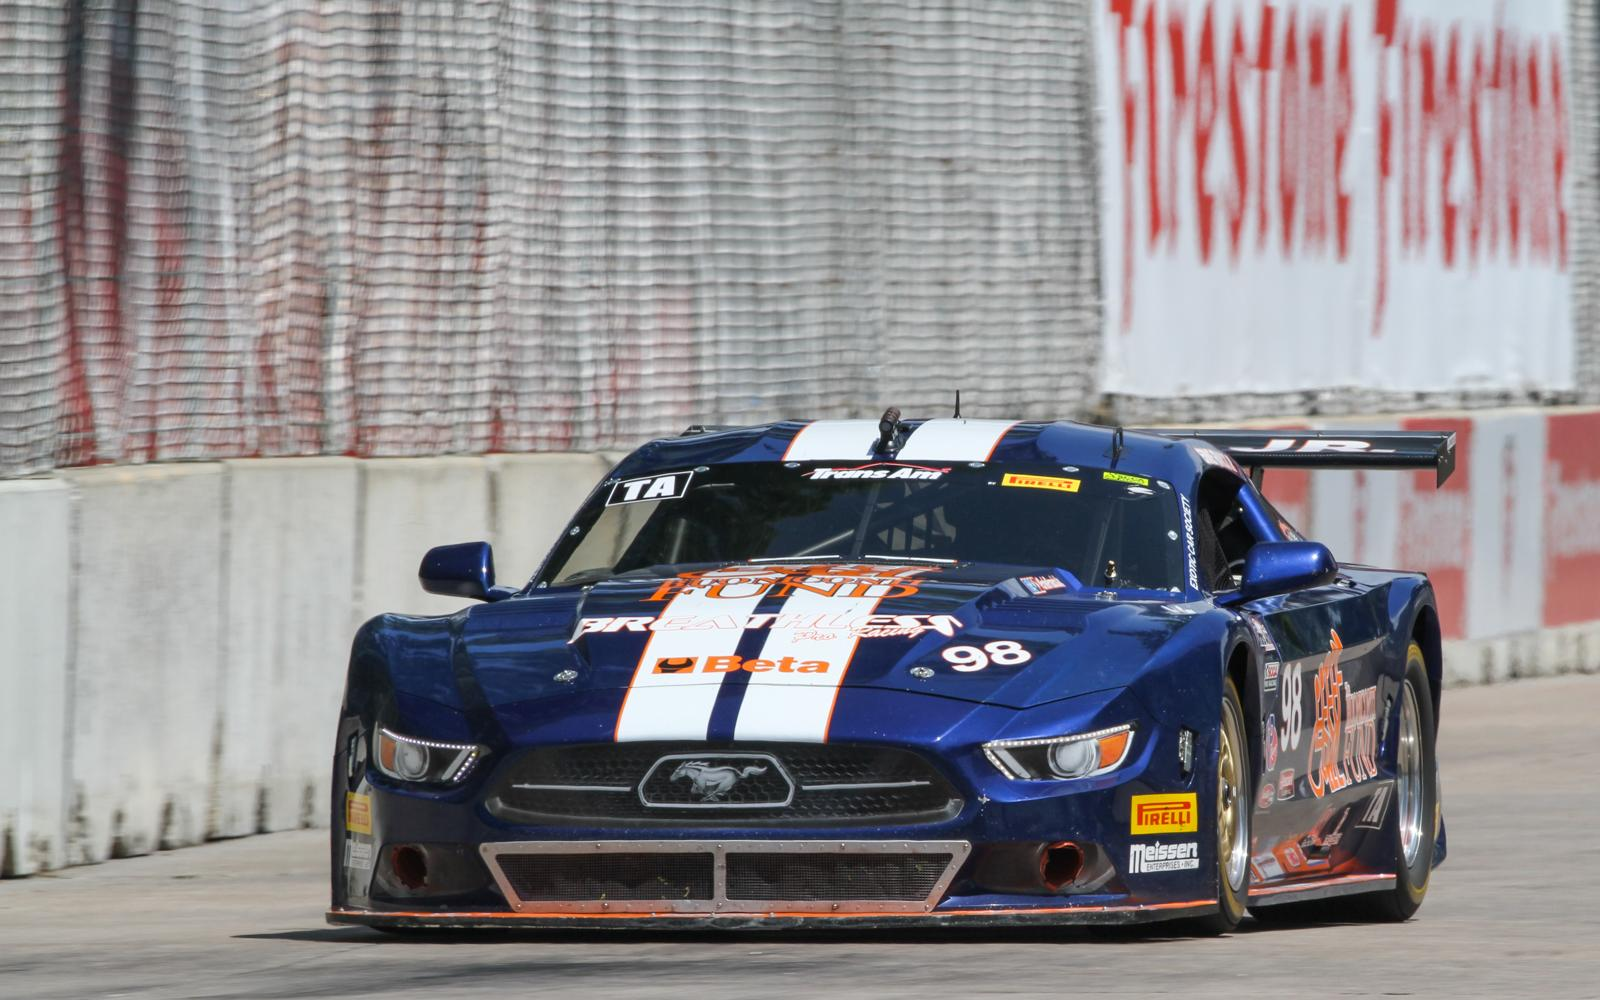 Francis, Jr., Robinson pace field in final practice on Belle Isle